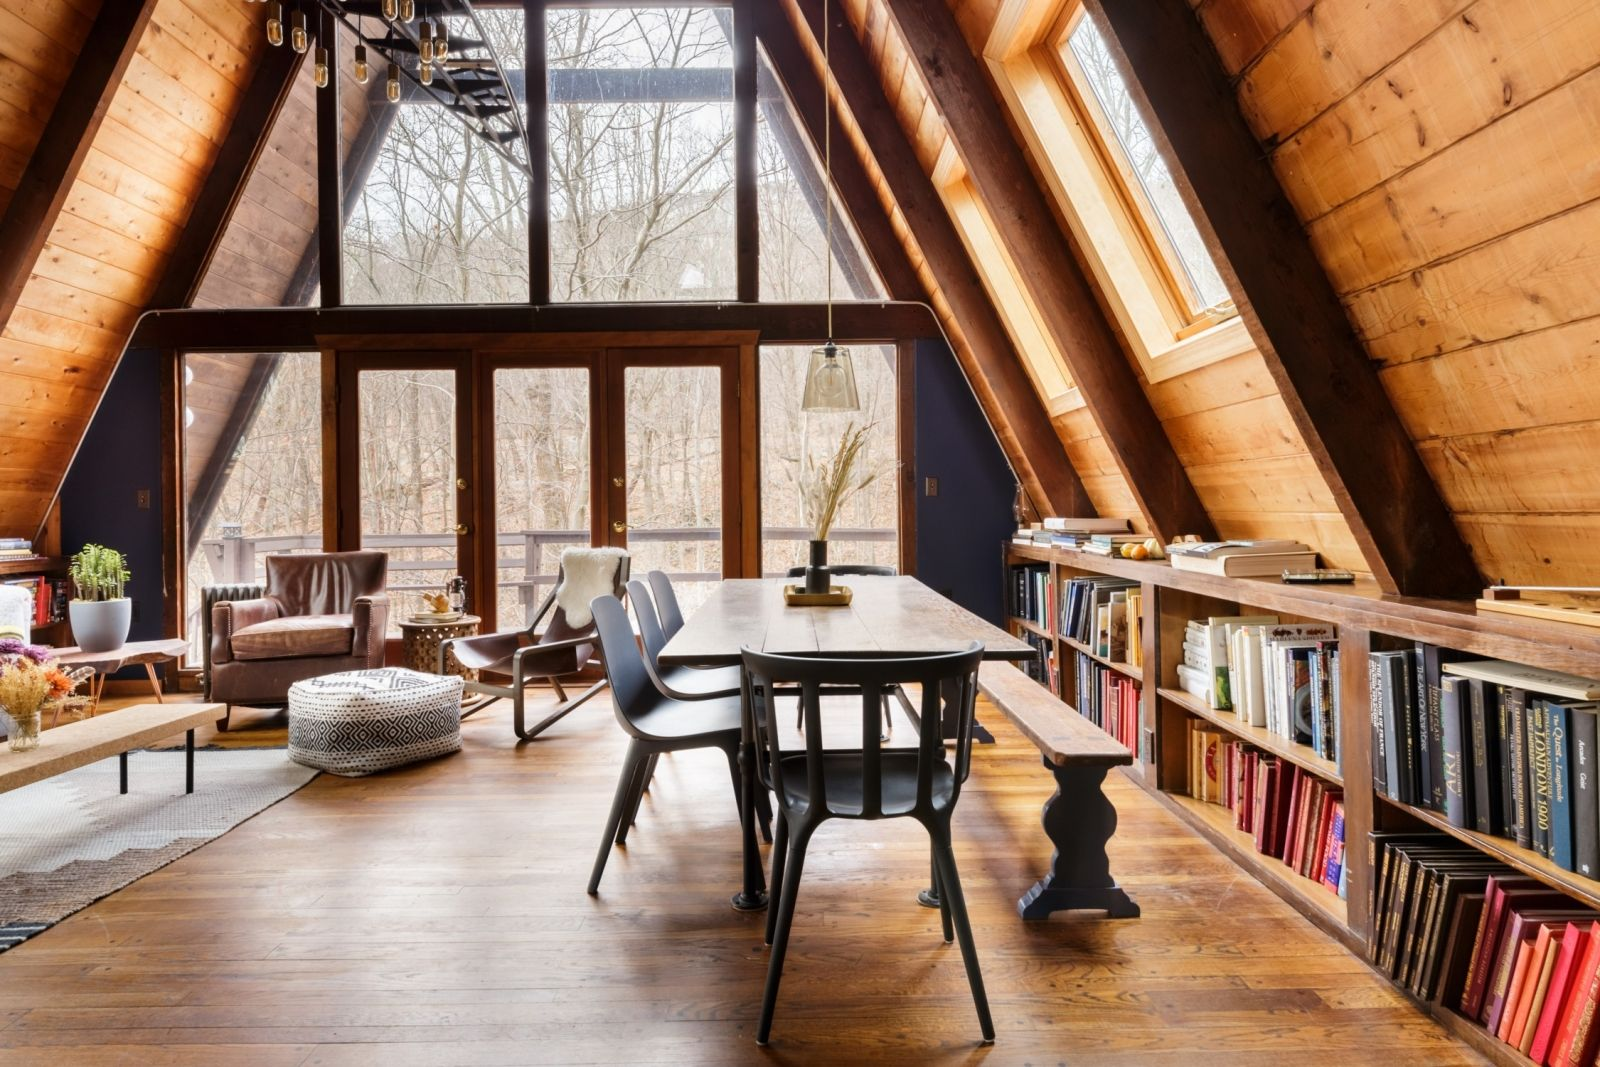 This Magnificent AFrame Cabin Is a Hudson Valley Dream